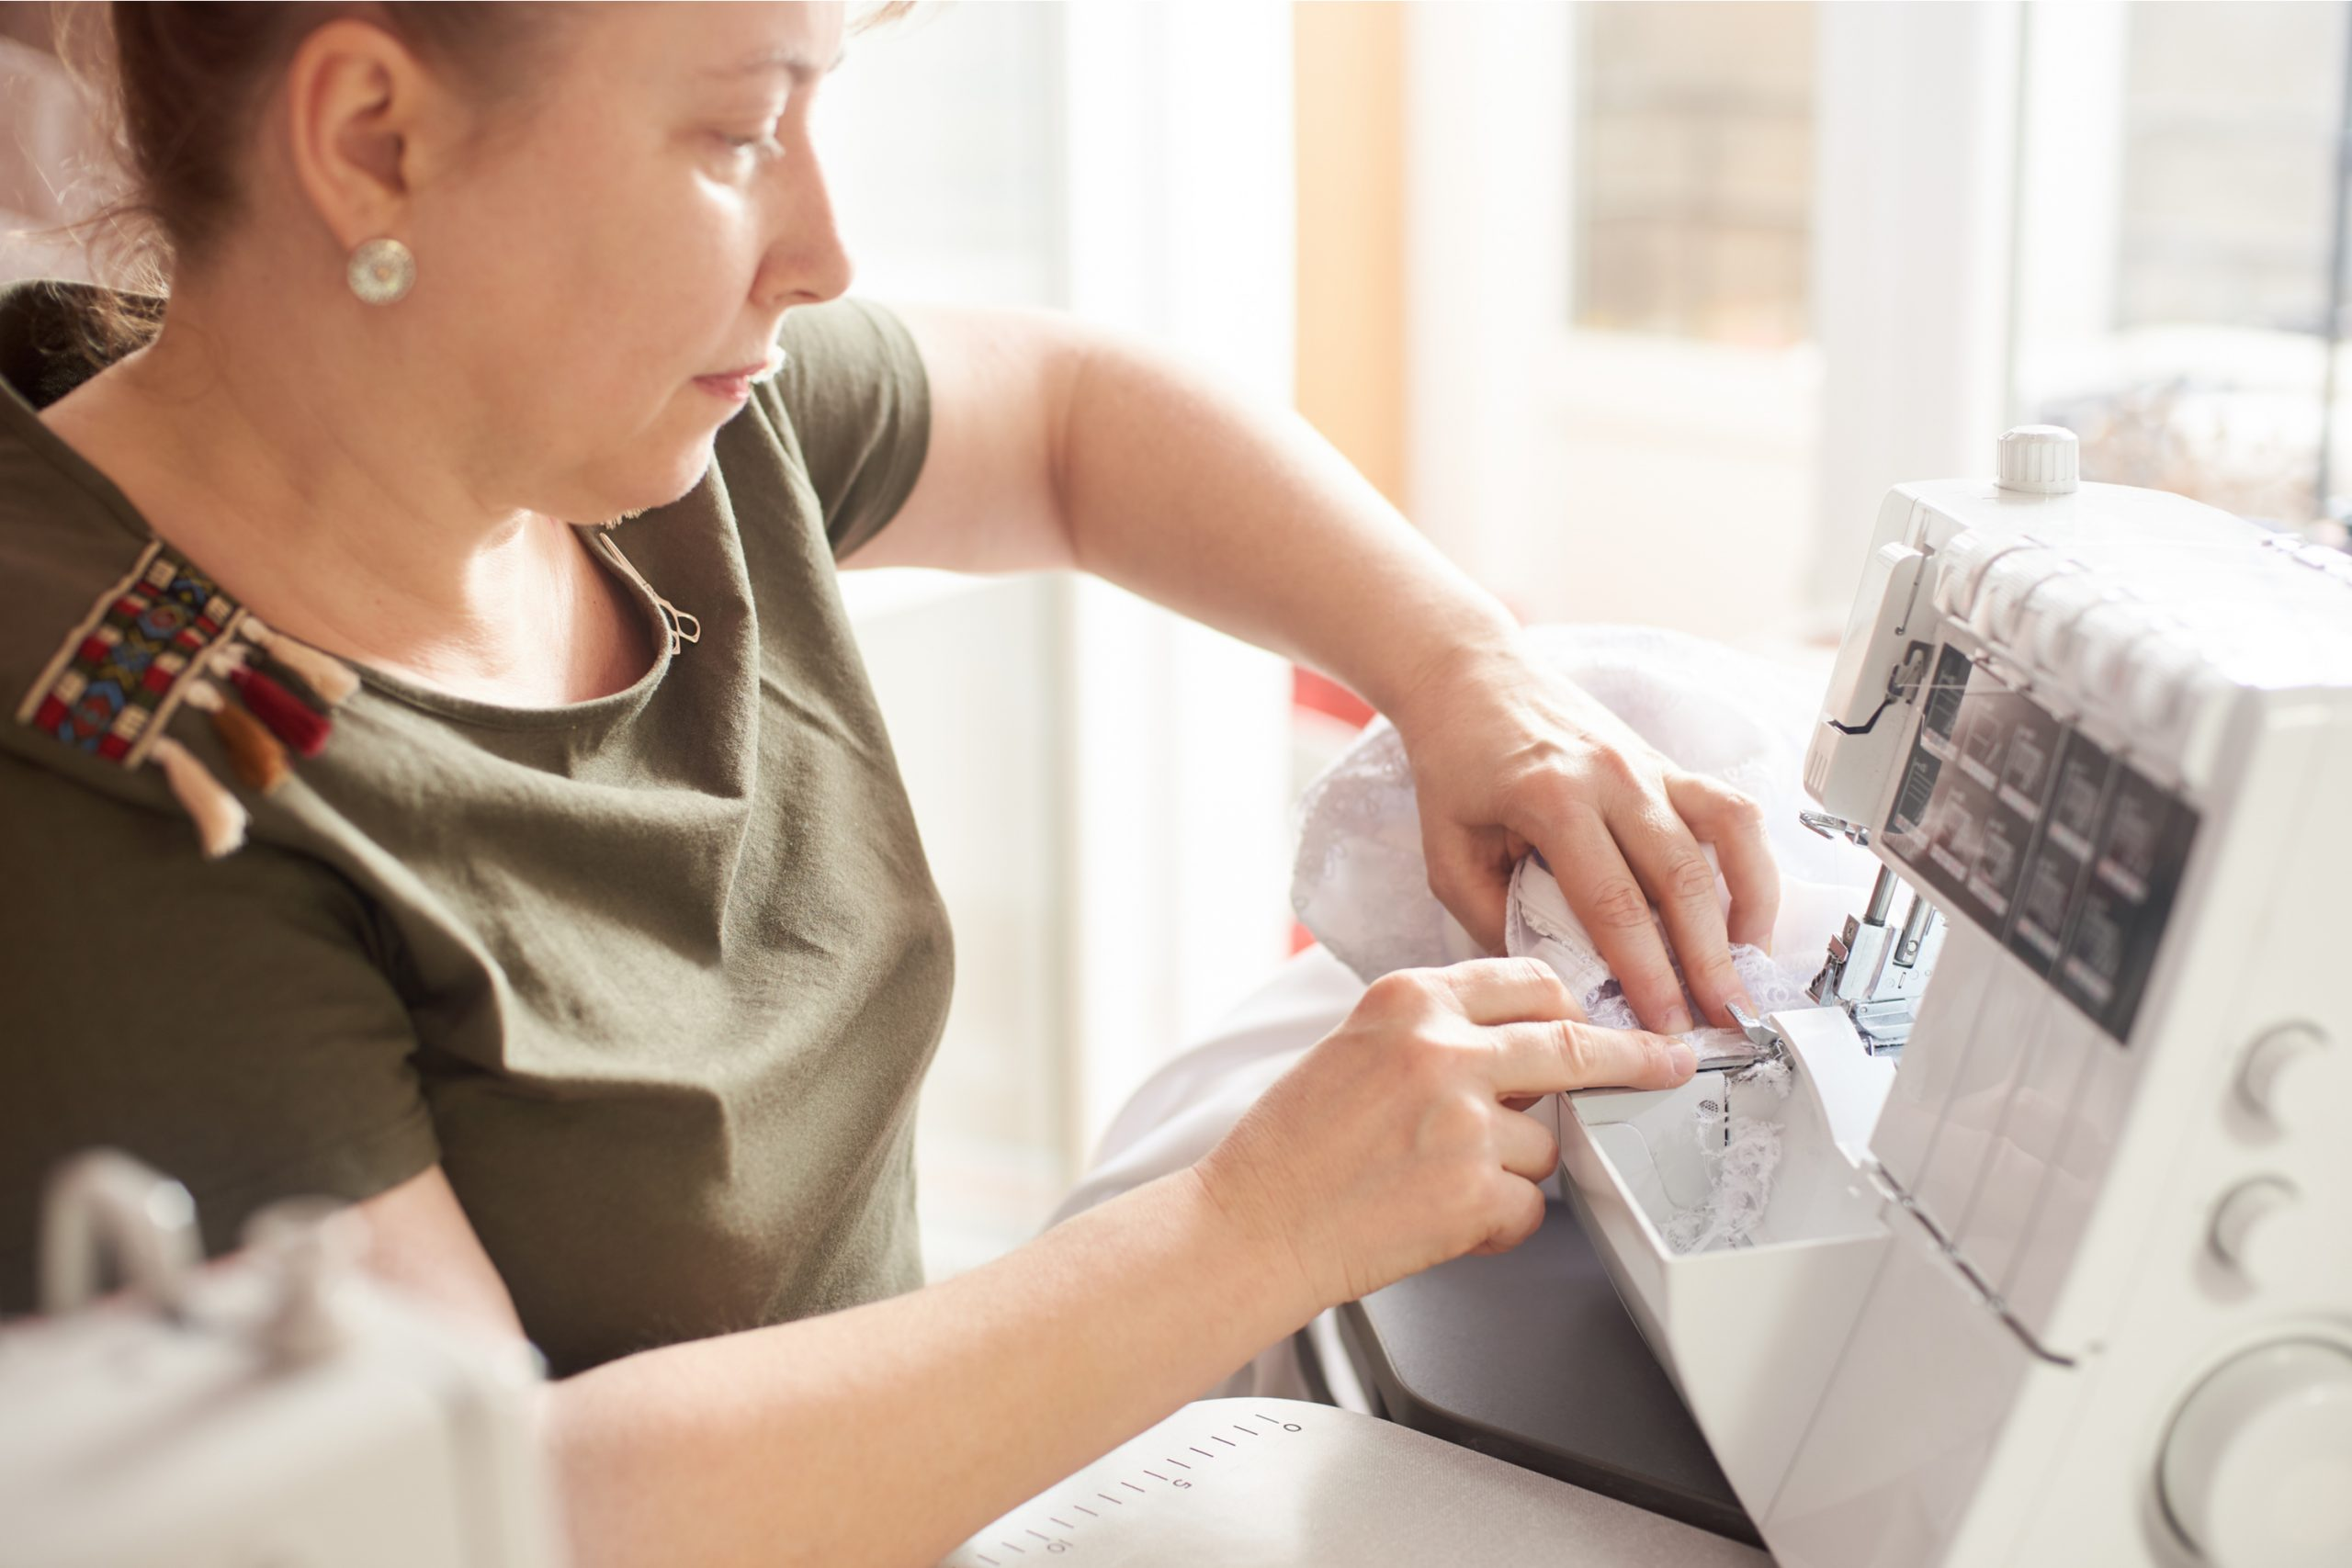 Serger machine sewing and cutting at the same time. Serger hacks.